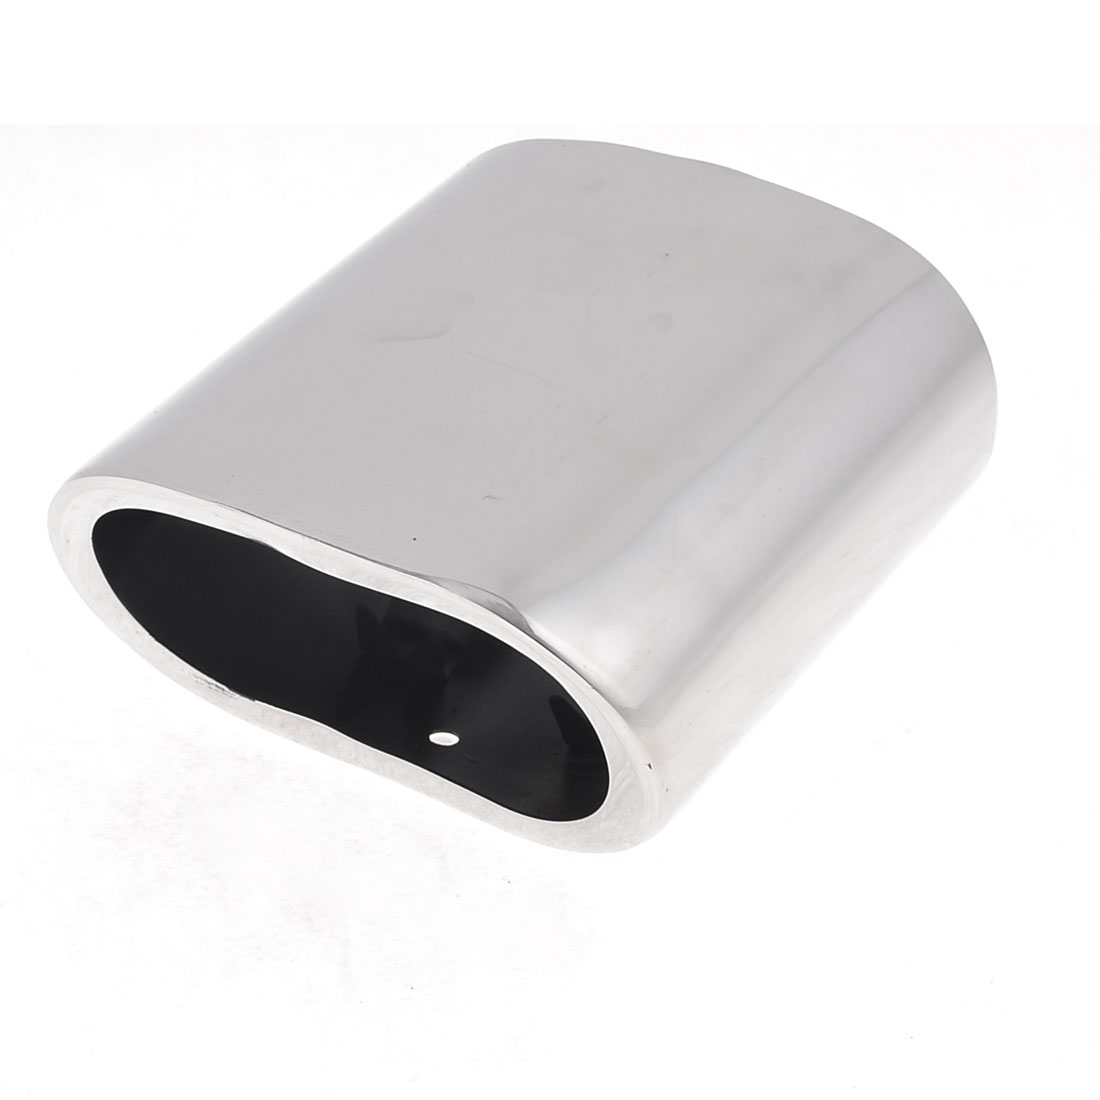 Elliptical Shape Stainless Steel Exhaust Pipe Muffler Tip Piping for BMW 318